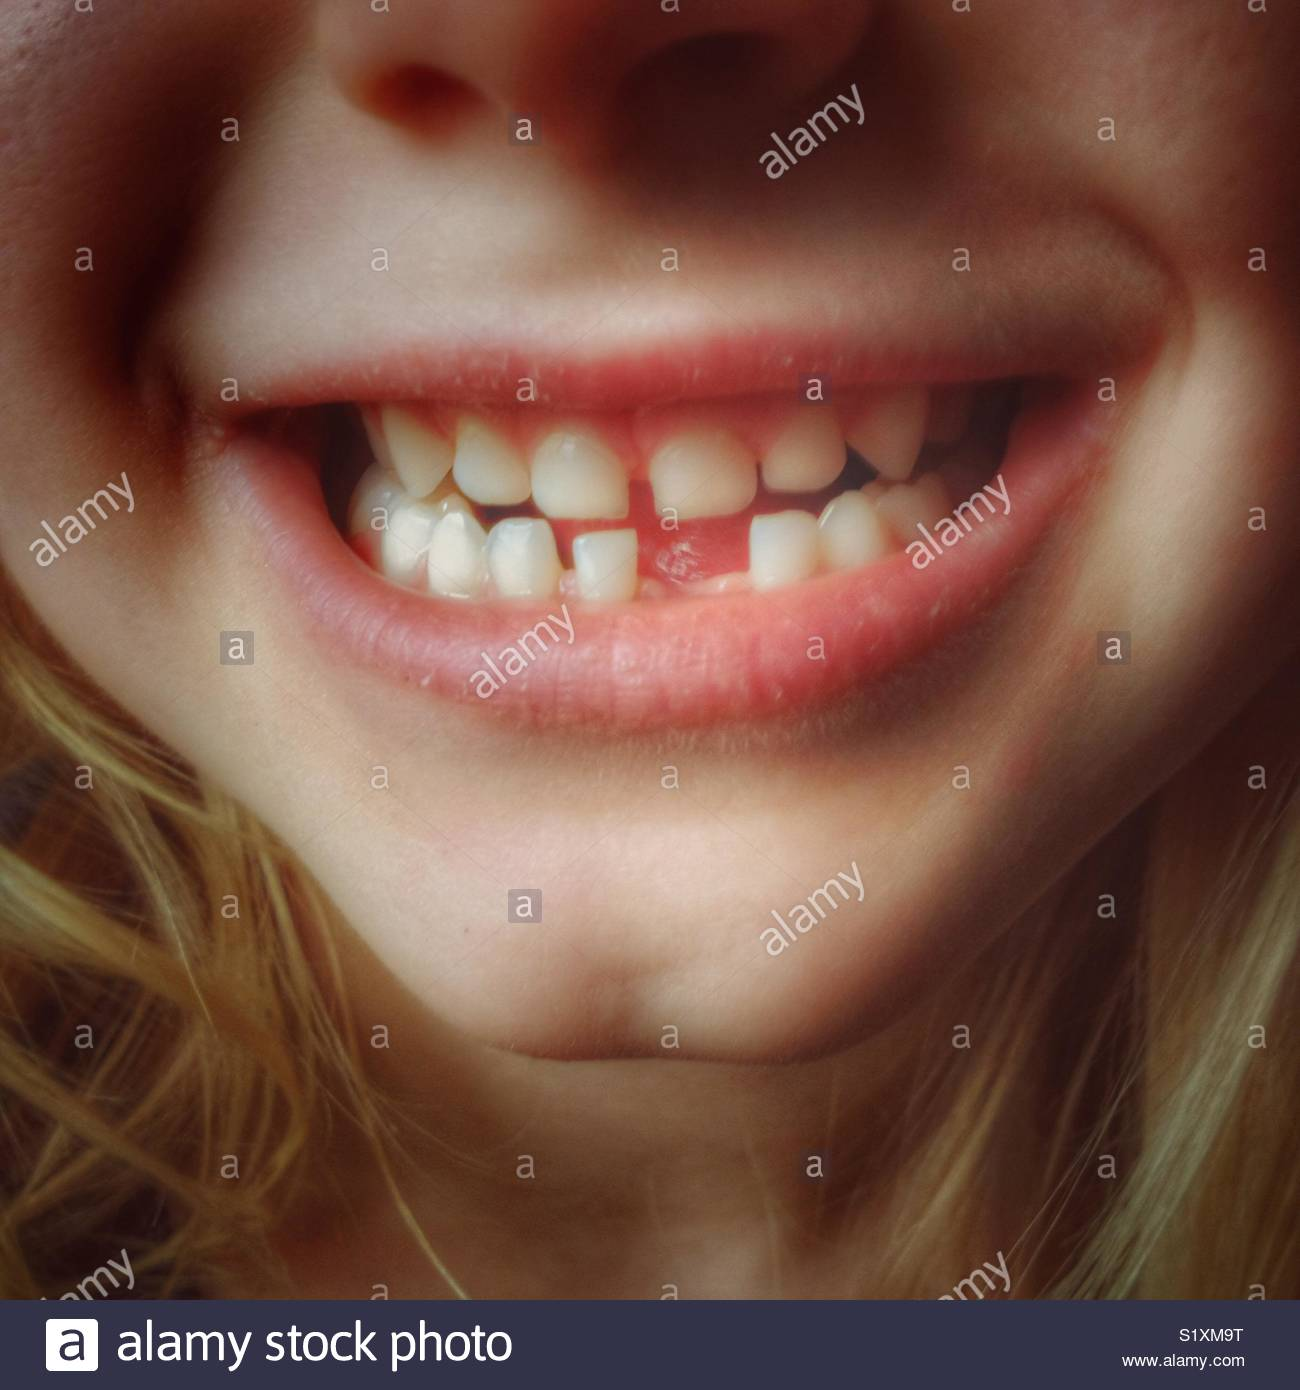 Child with missing front tooth closeup Stock Photo